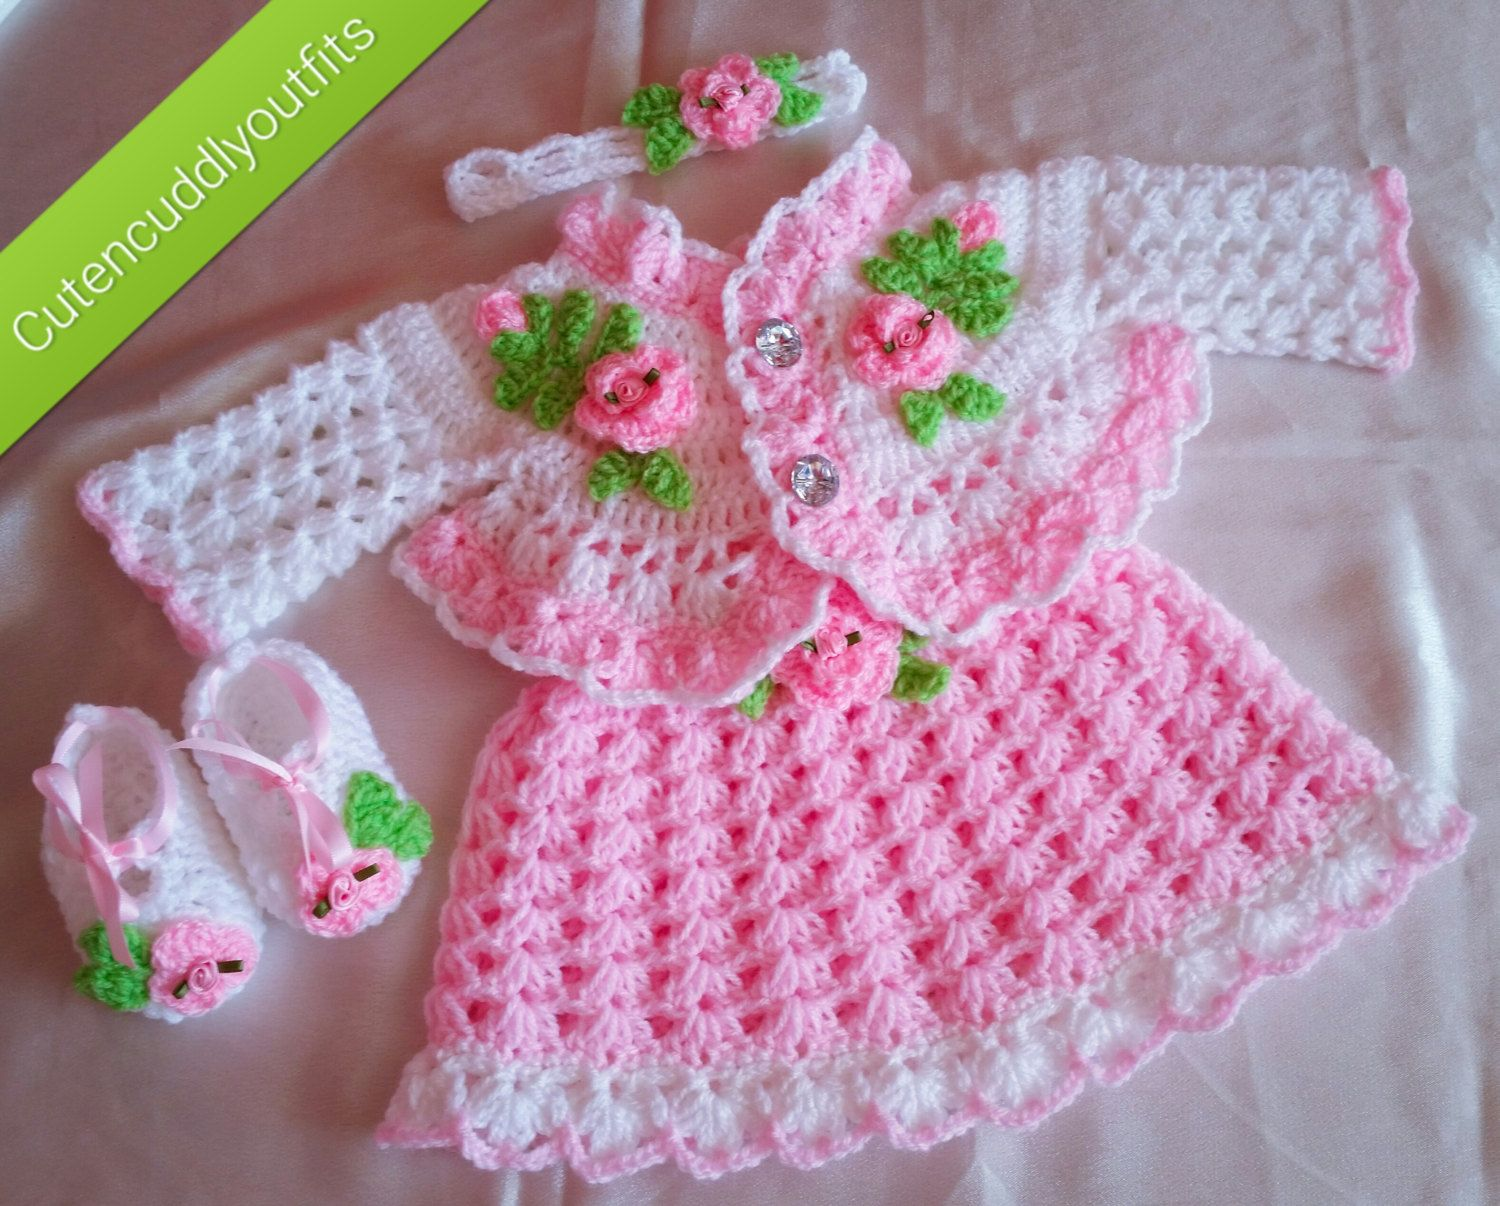 Rosebuds baby dress crochet pattern cutencuddlyoutfits 375 gbp rosebuds baby dress crochet pattern cutencuddlyoutfits 375 gbp september 29 2015 at 0244pm bankloansurffo Choice Image